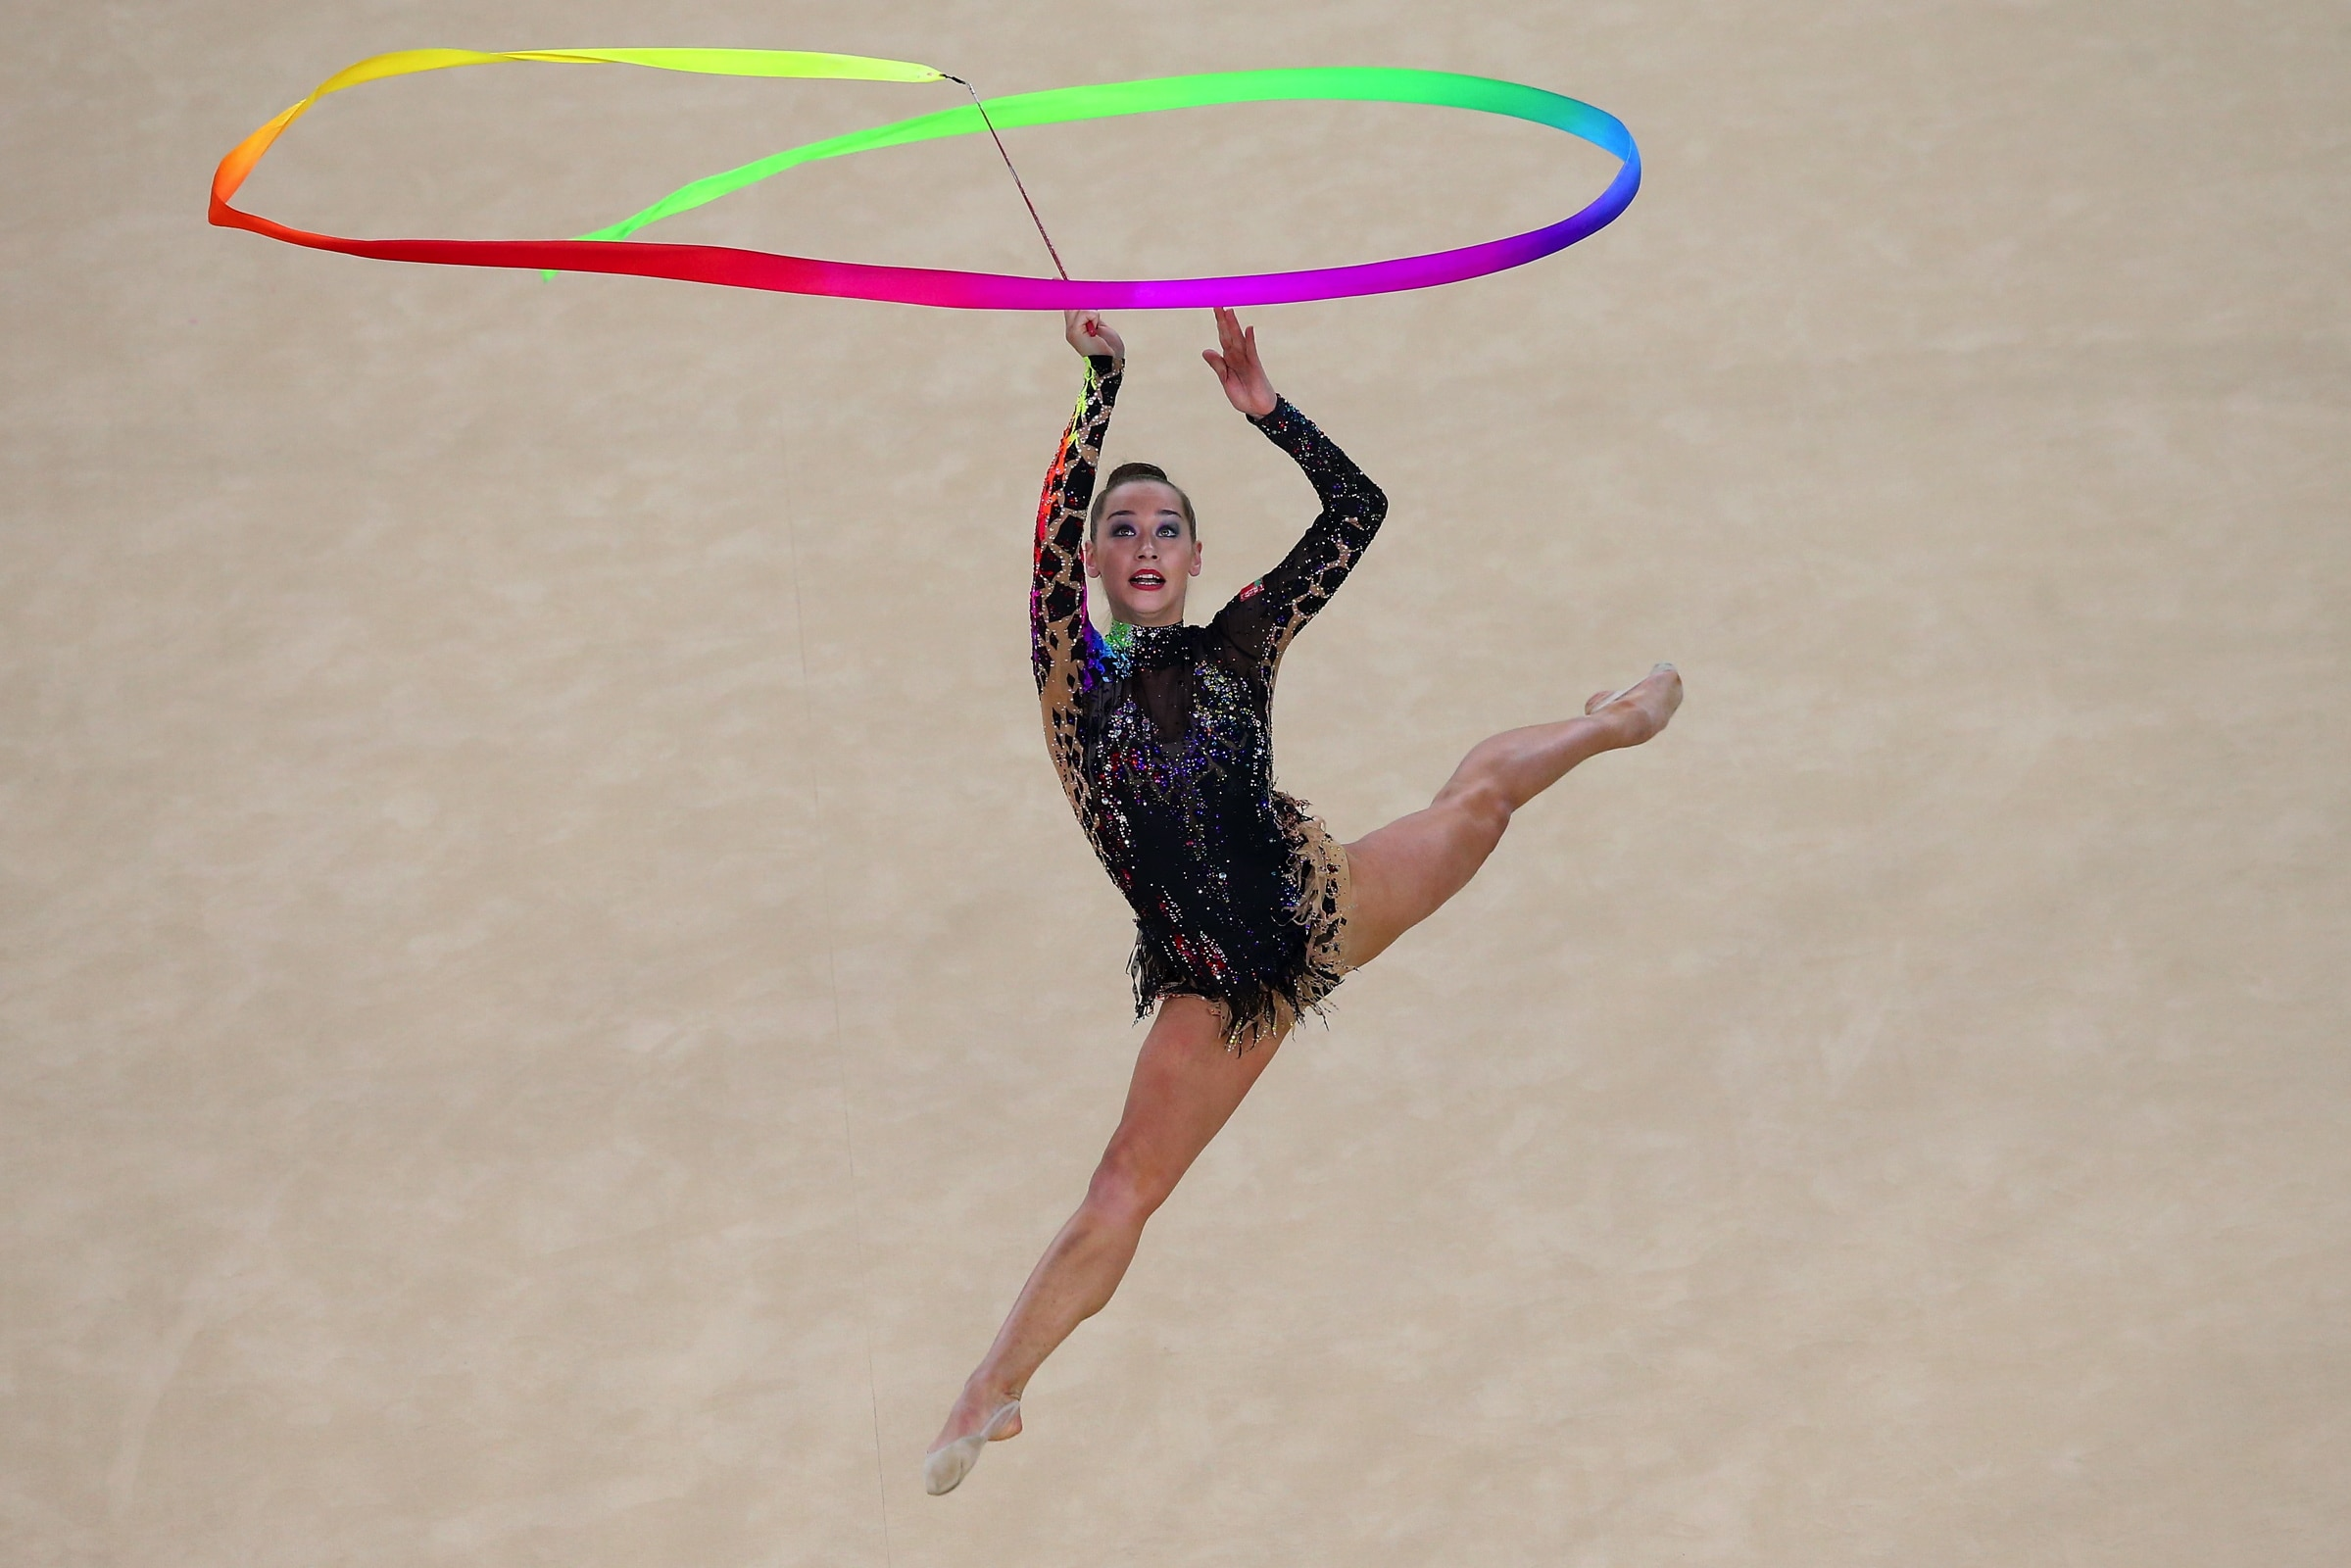 Gymnastics Rhythmic - Women's Individual All-Around